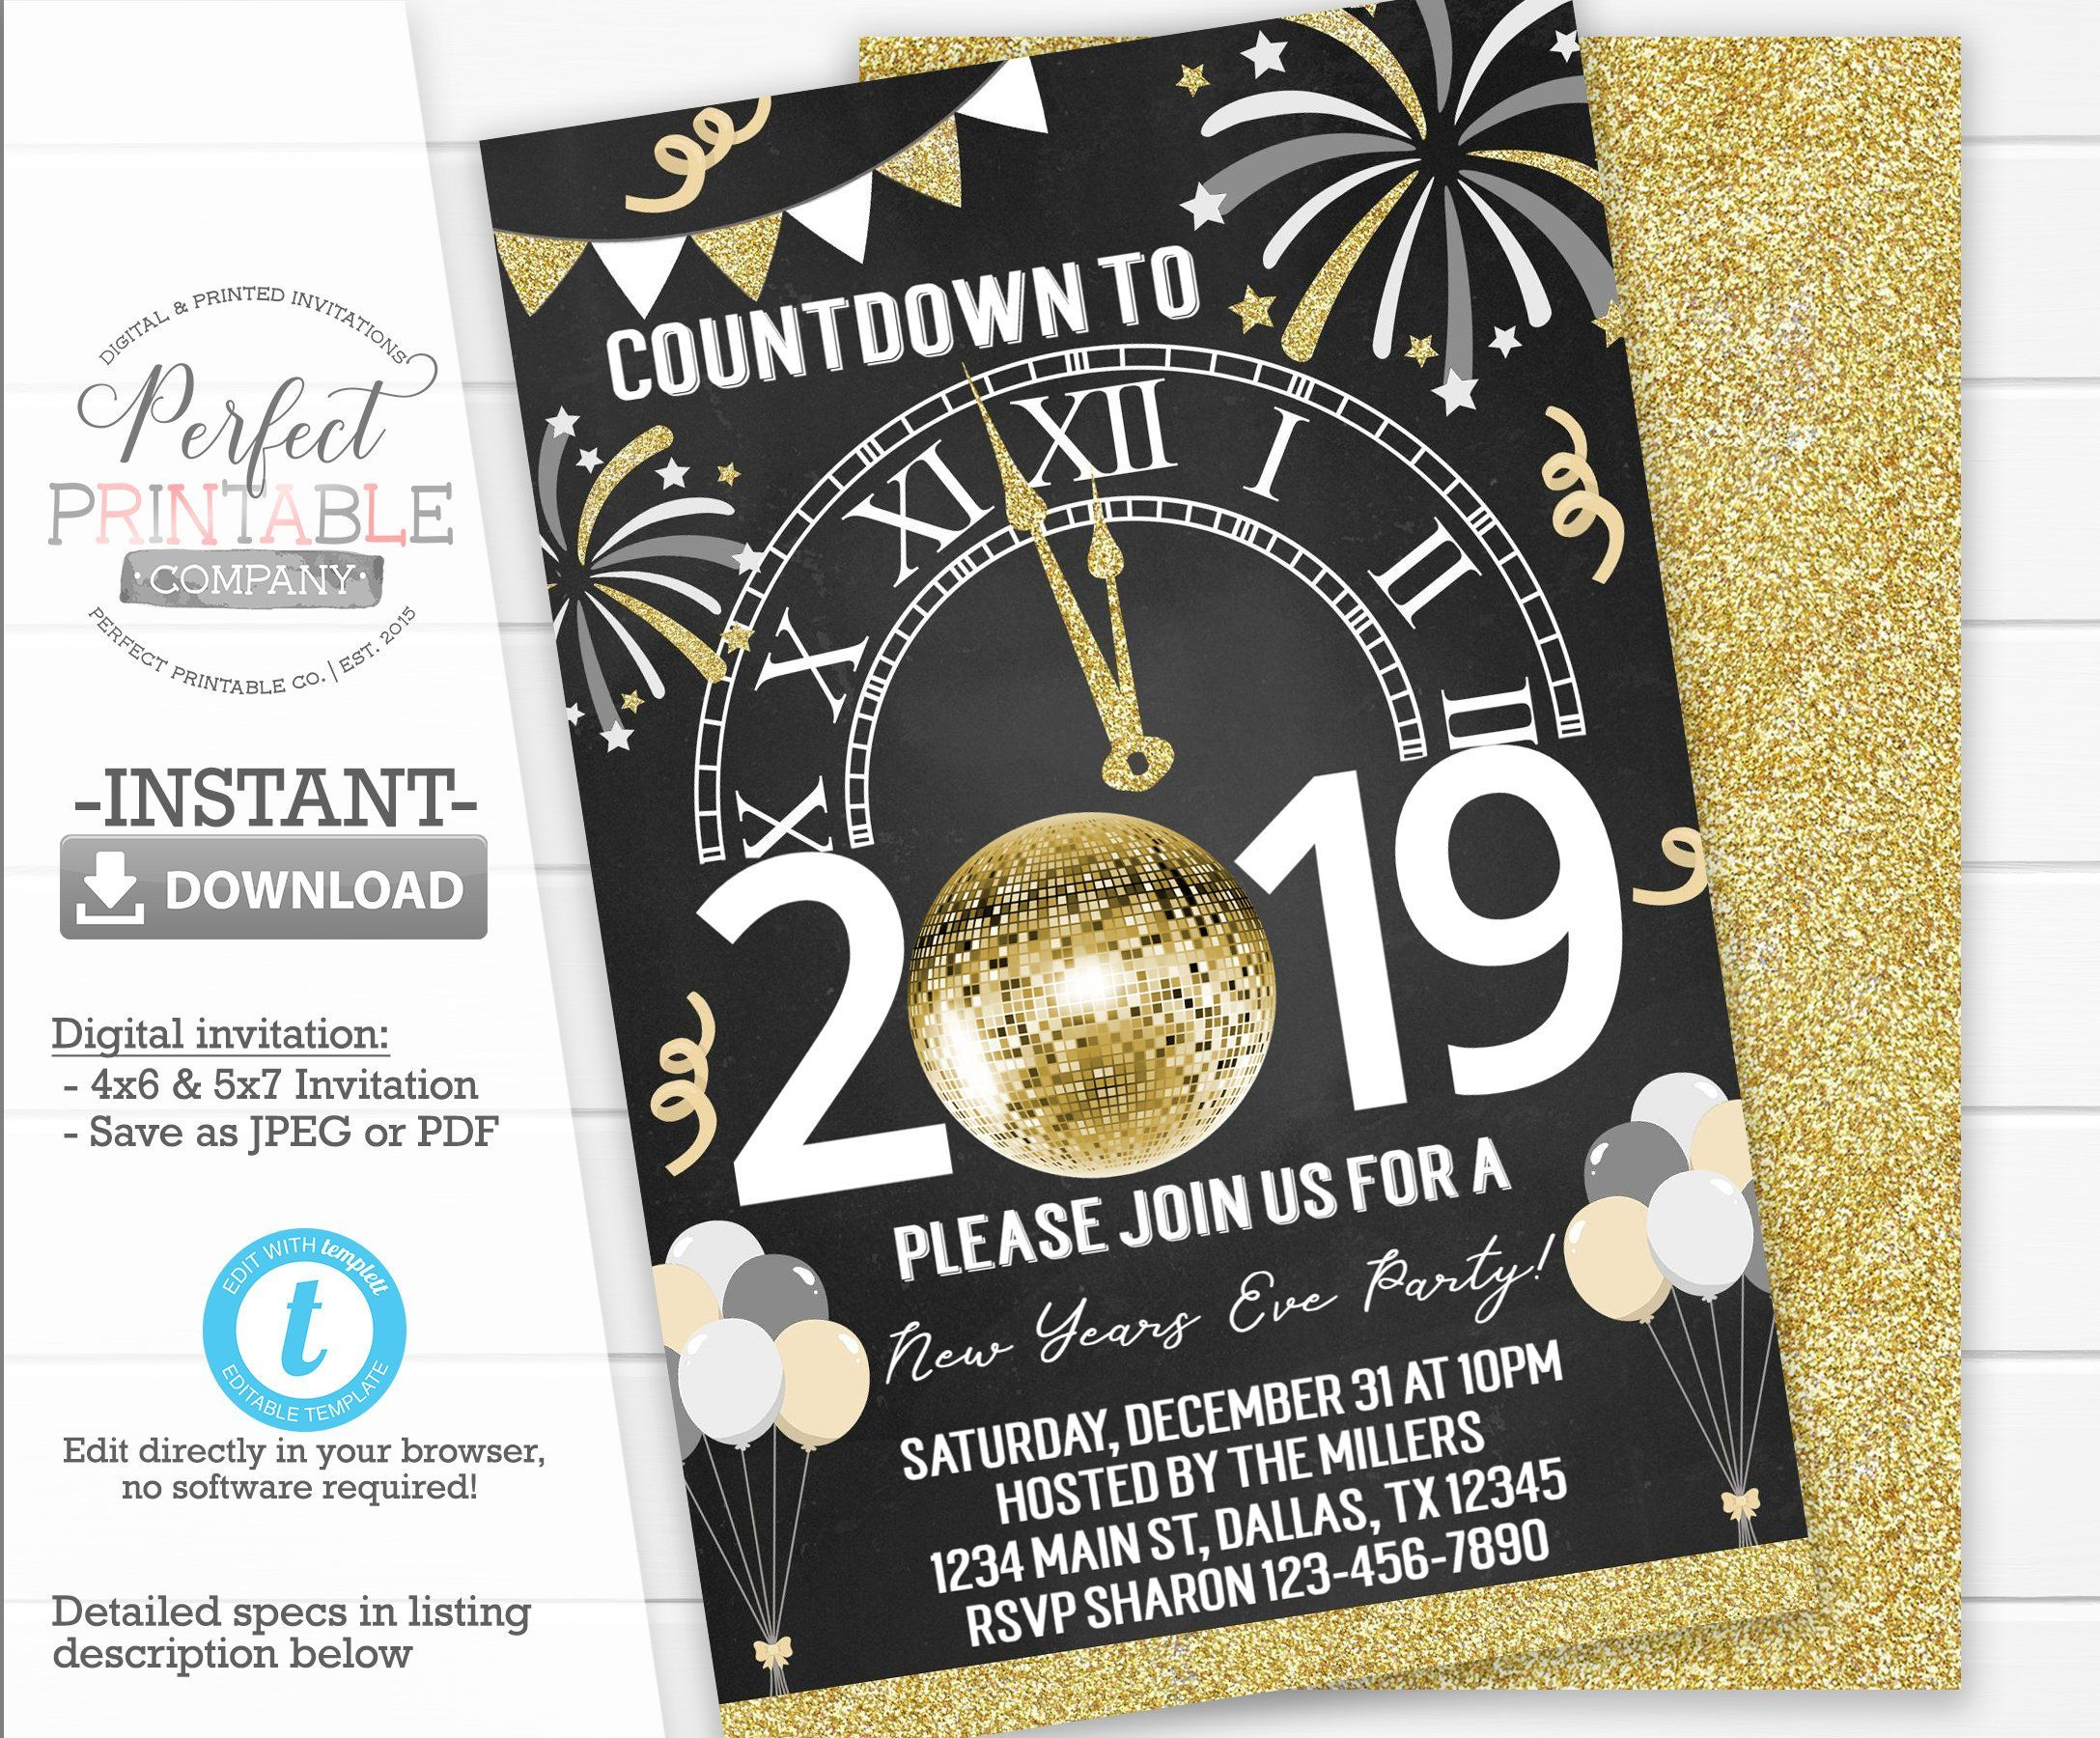 New Years Party Invitation, Countdown to 2020 Invitation